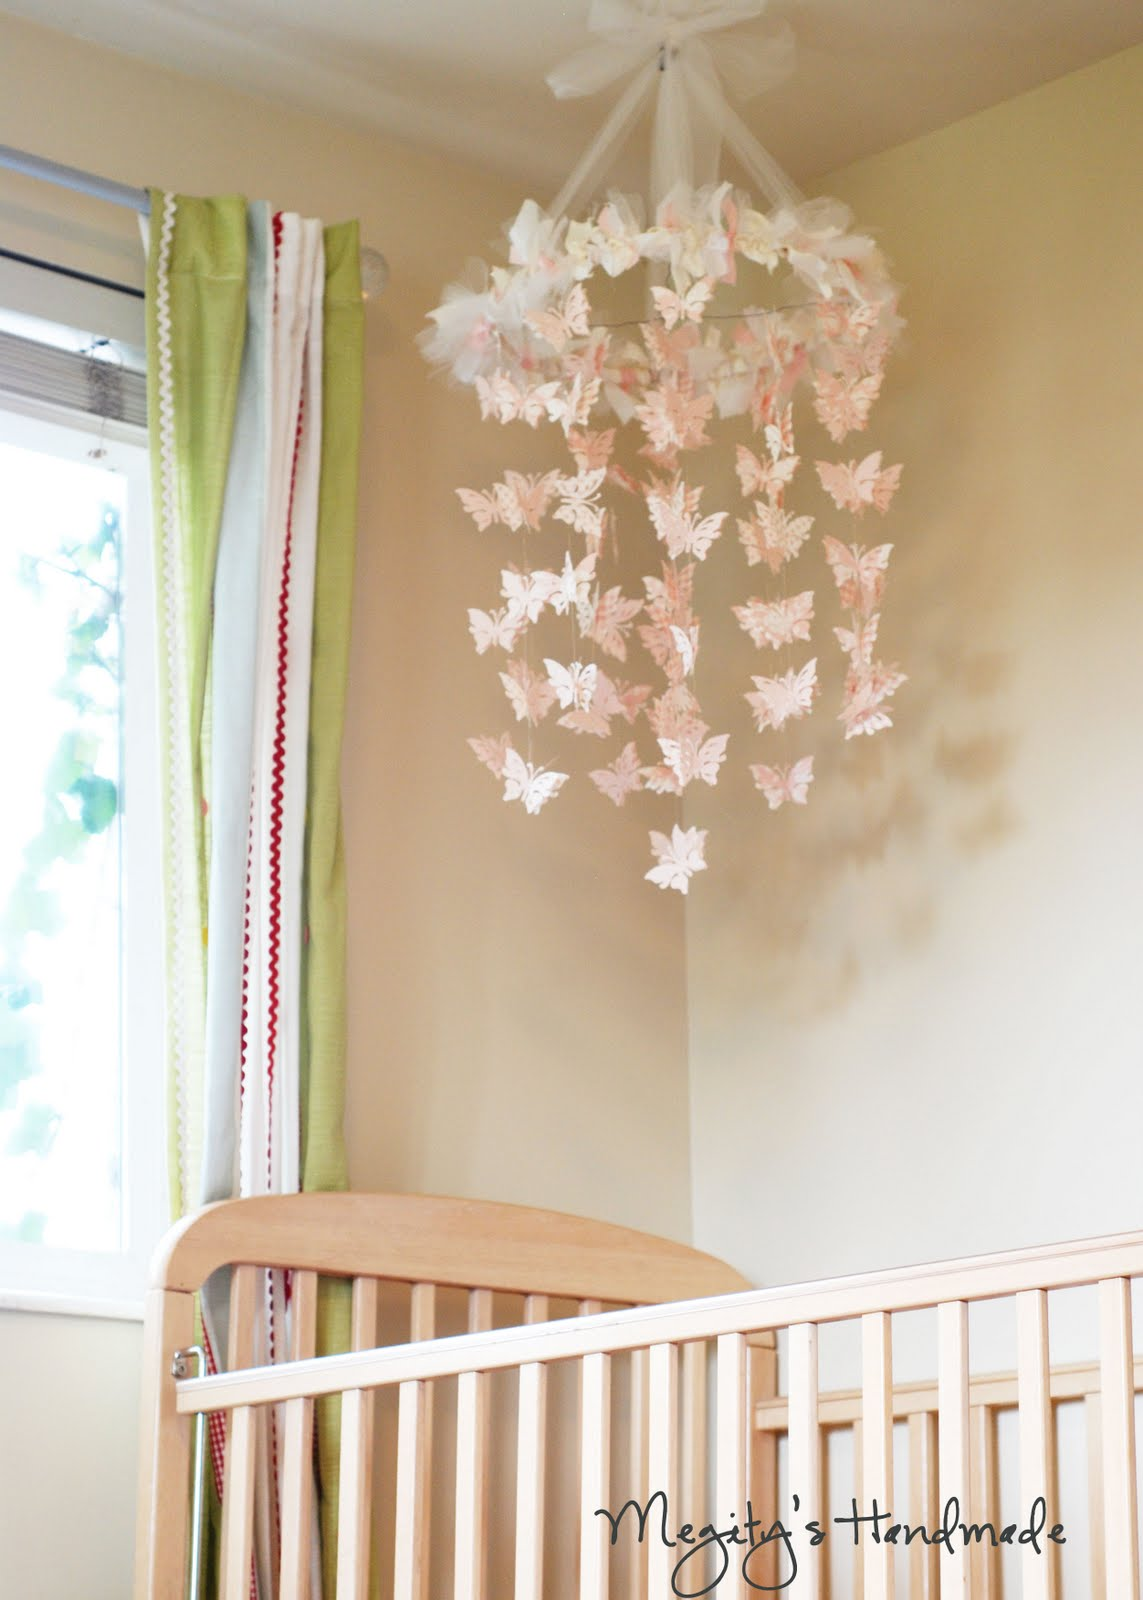 Megitys handmade butterfly chandelier mobile arubaitofo Image collections